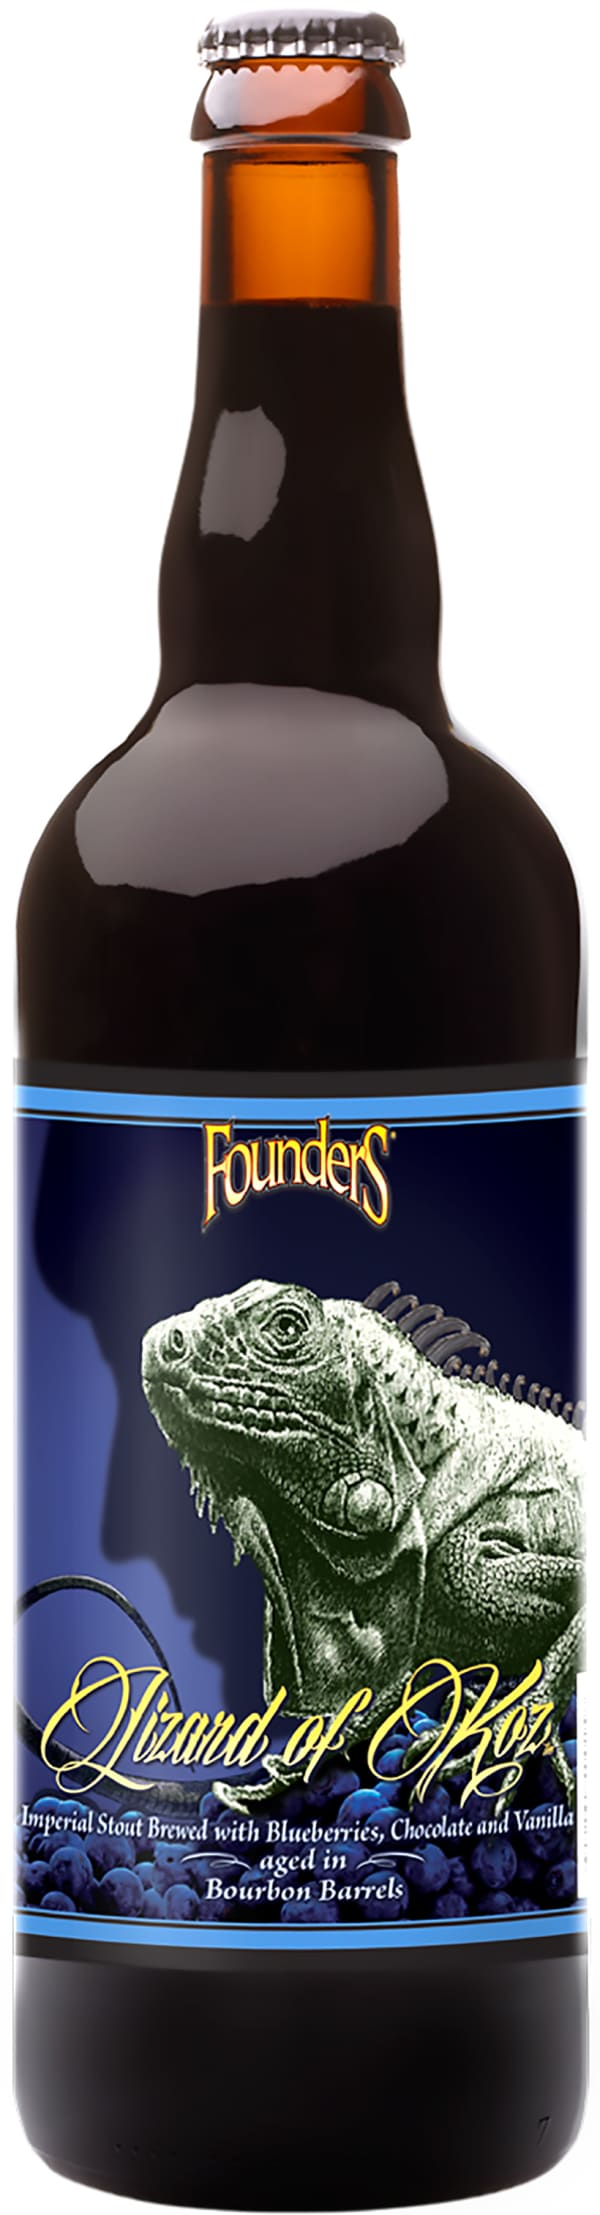 Founders Lizard of Koz